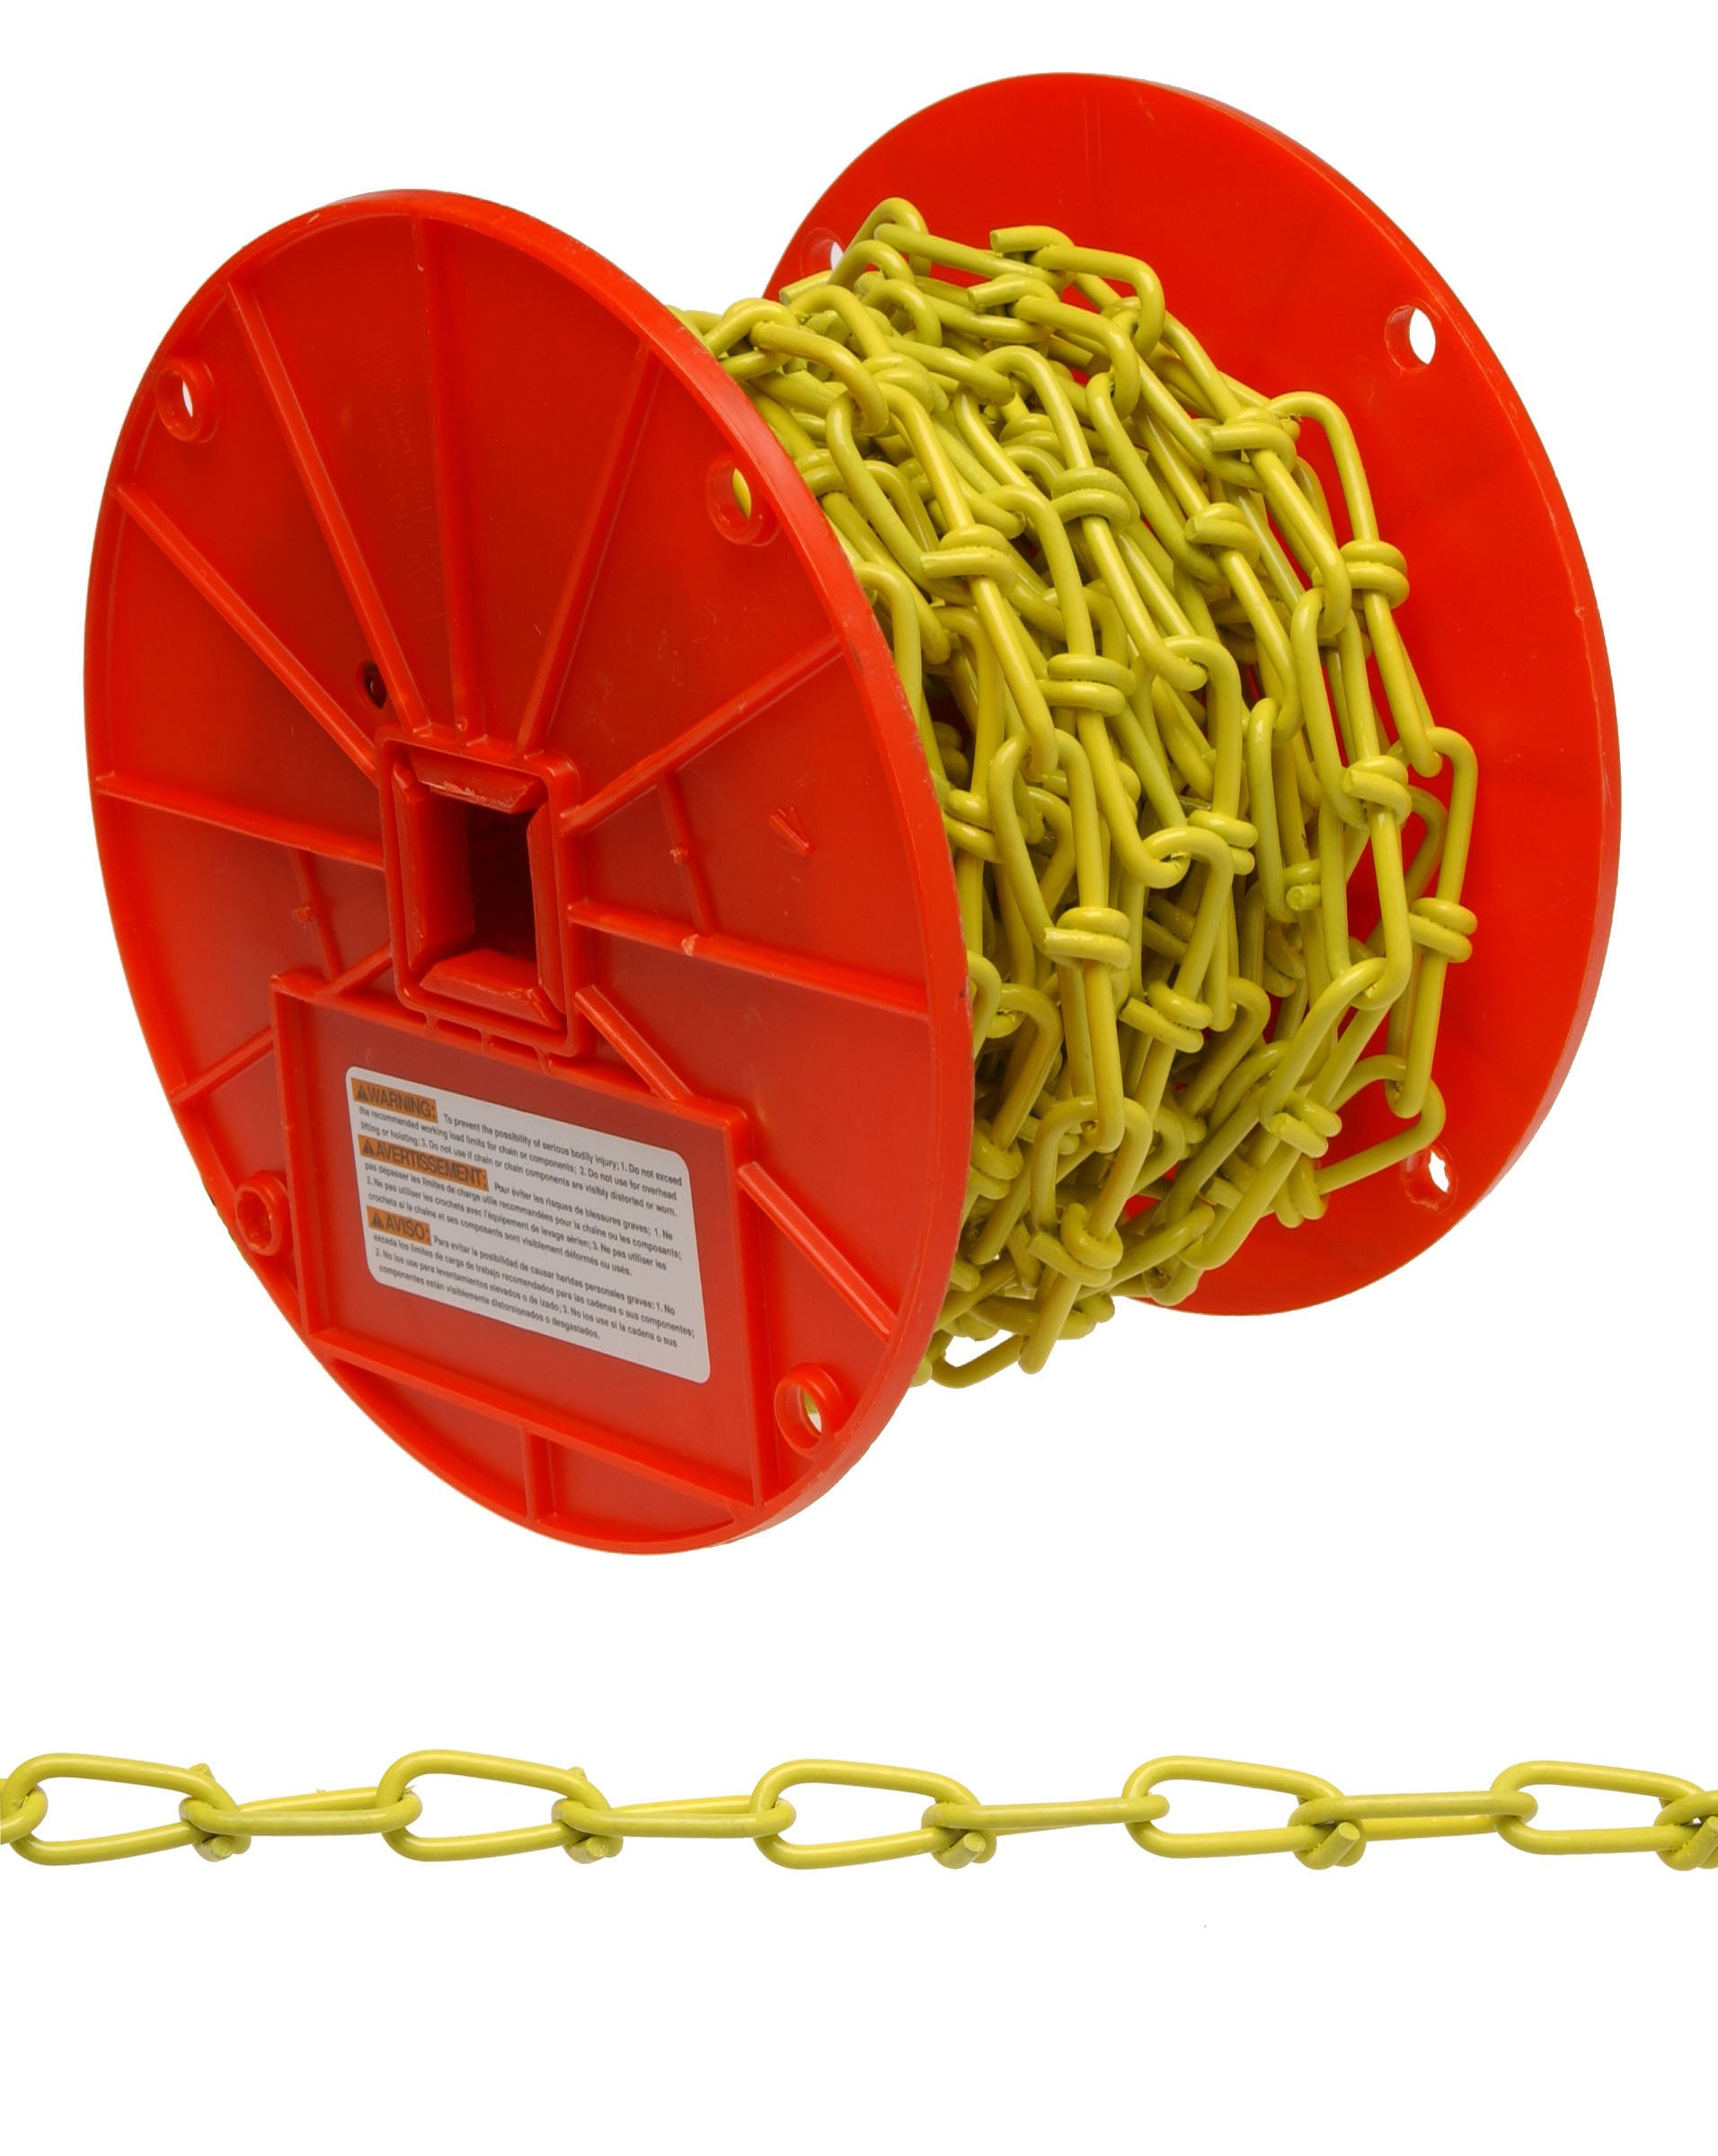 Campbell PD0722087 Low Carbon Steel Inco Double Loop Chain on Reel, Yellow Polycoated, 2/0 Trade, 0.14'' Diameter, 50' Length, 255 lbs Load Capacity